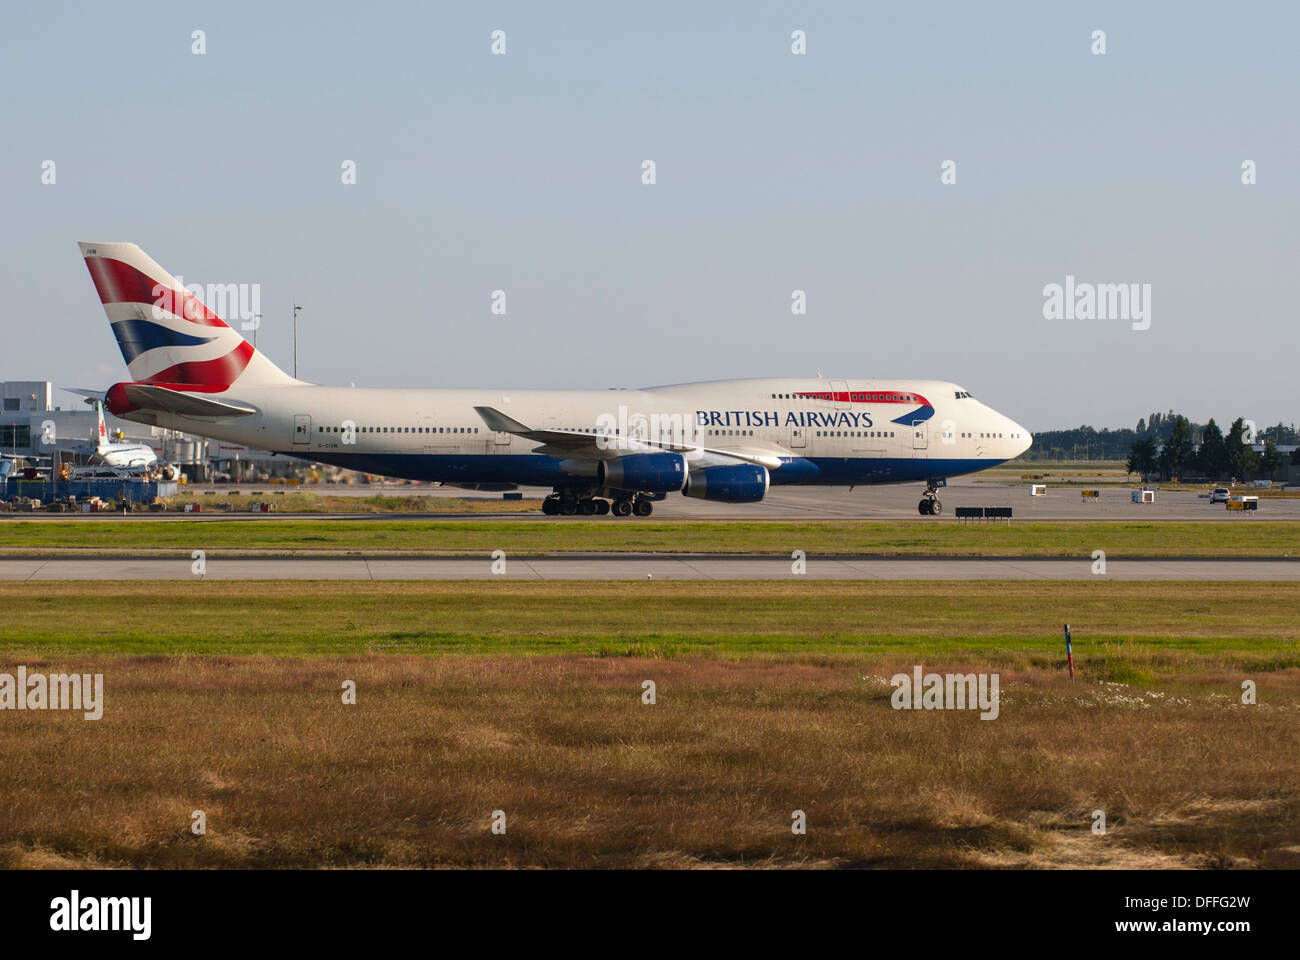 British Airways Boeing 747-436 taxiing down runway at YVR, Vancouver International Airport. - Stock Image